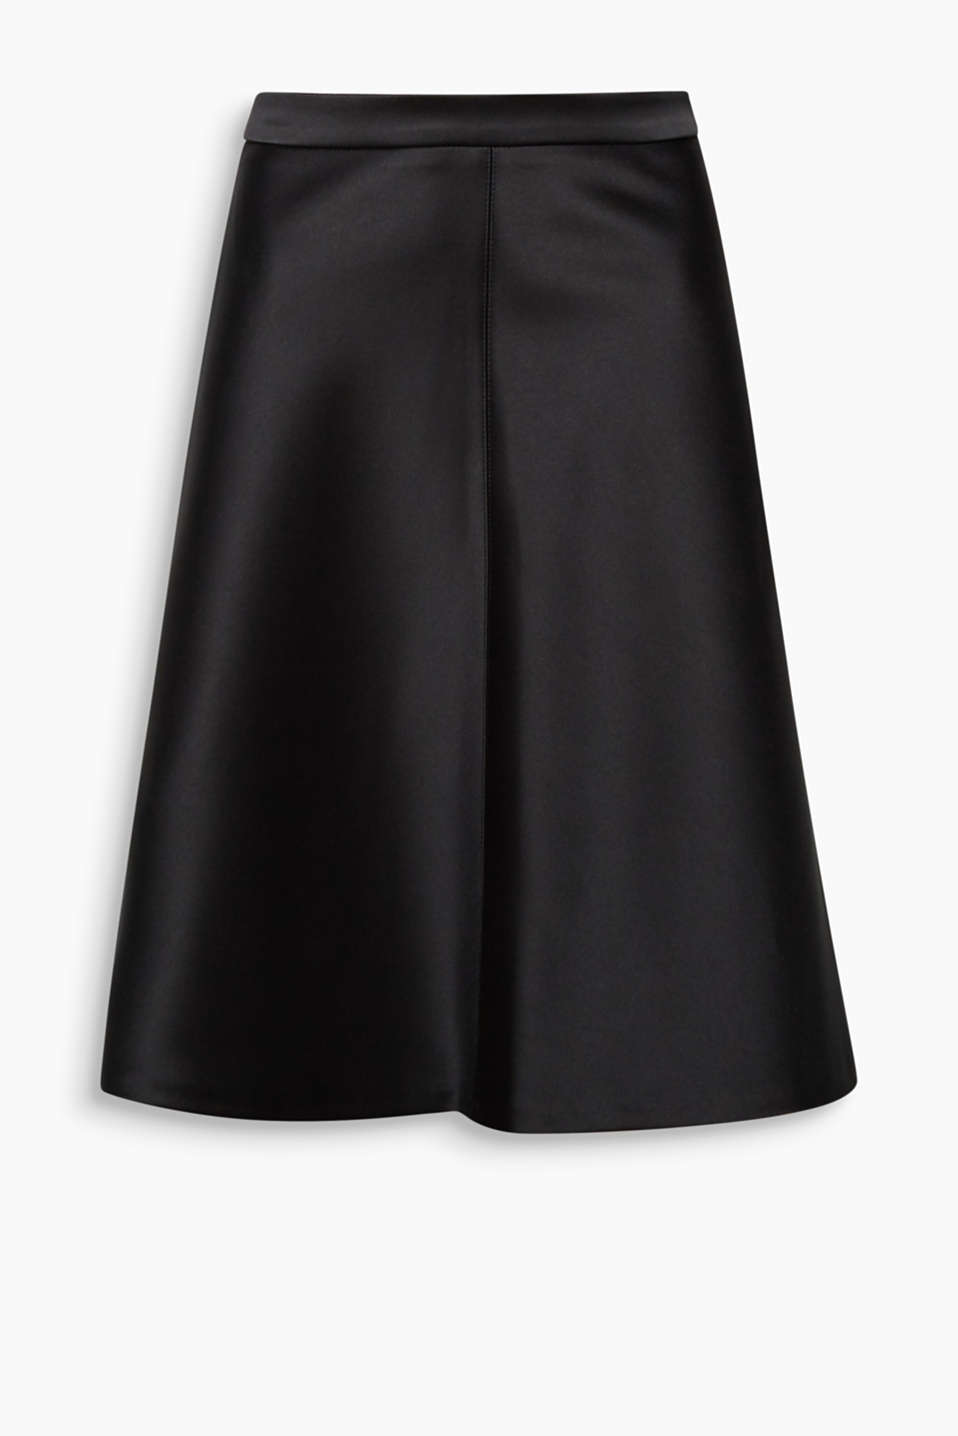 The fine silky shine and the flared shape give this A-line skirt its very special look!